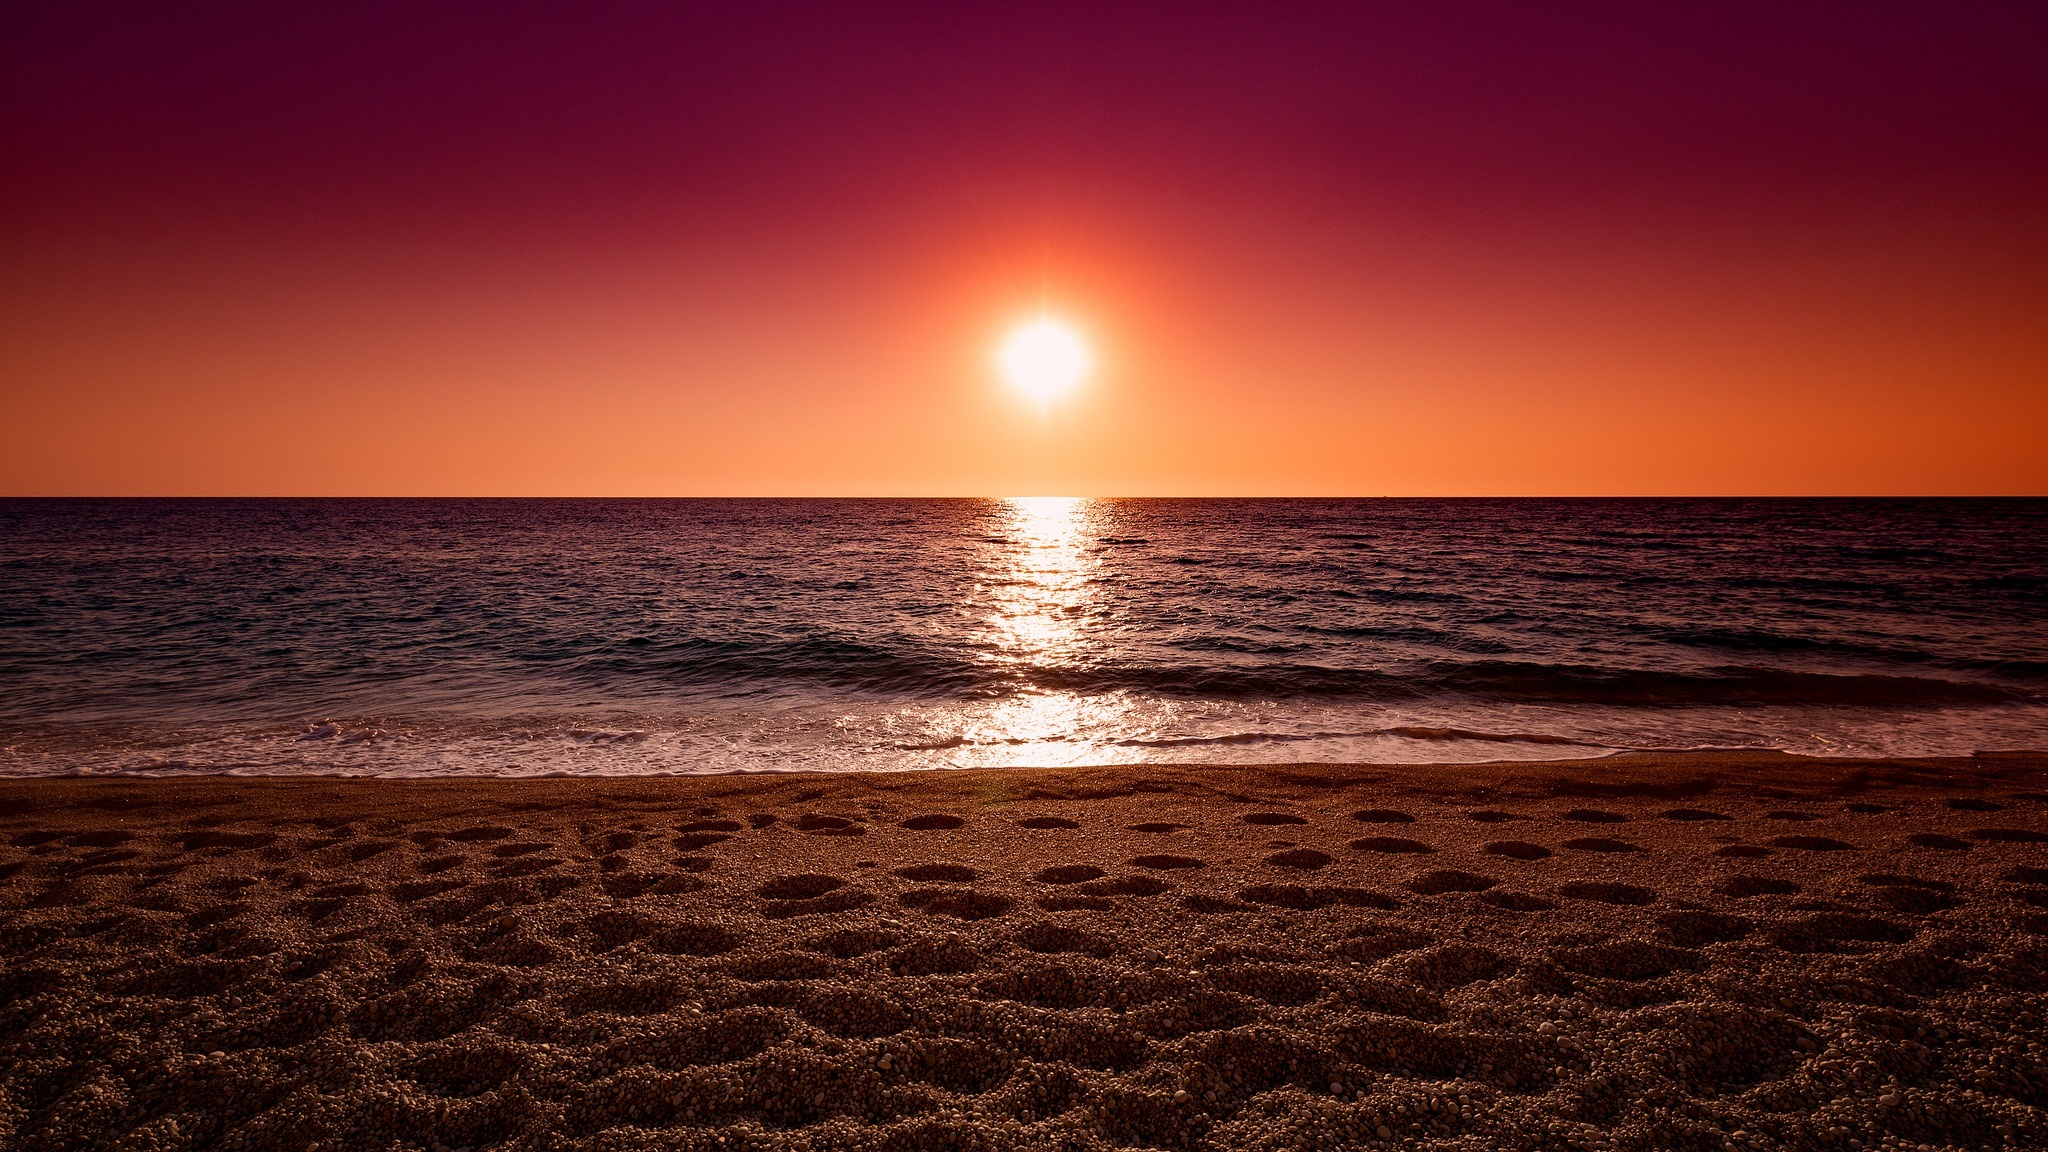 ocean-sand-sunset-do.jpg